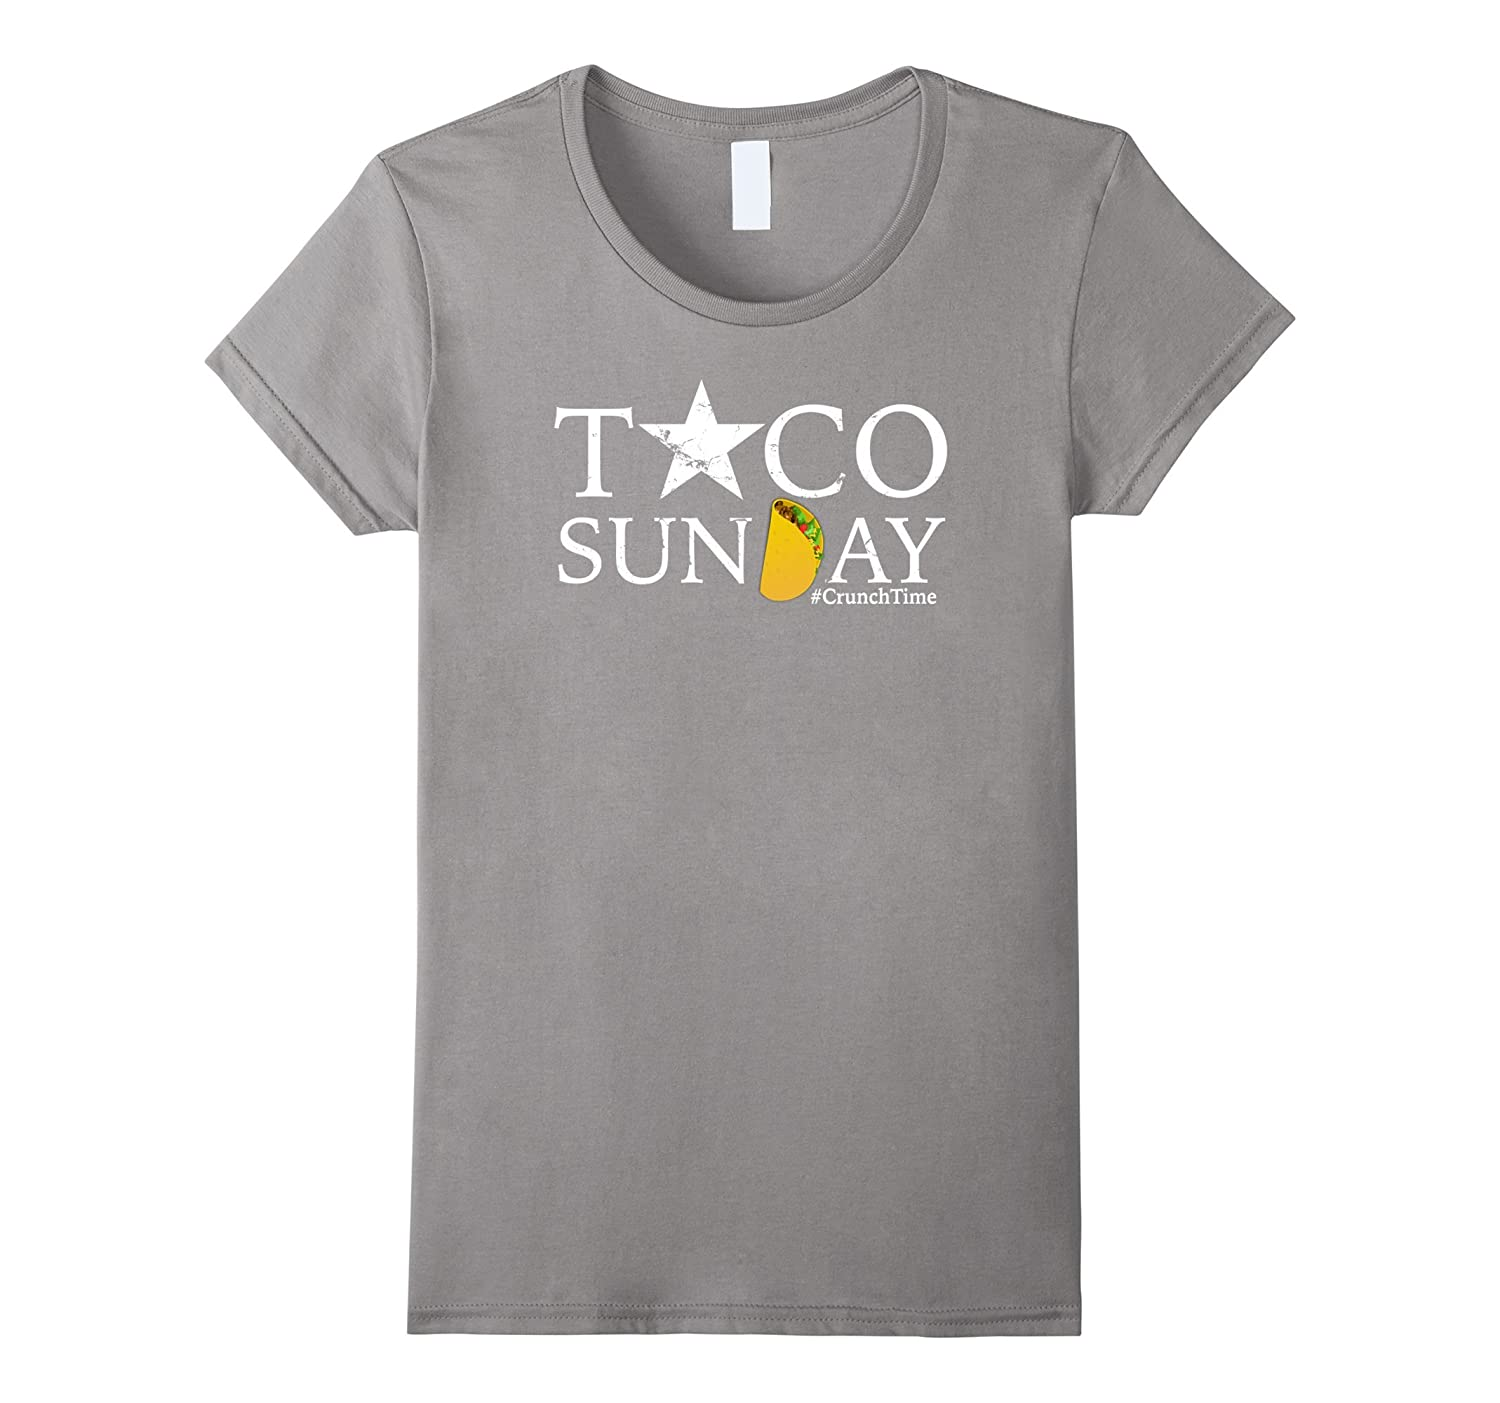 Taco Sunday Crunch Time Grunge T-shirt